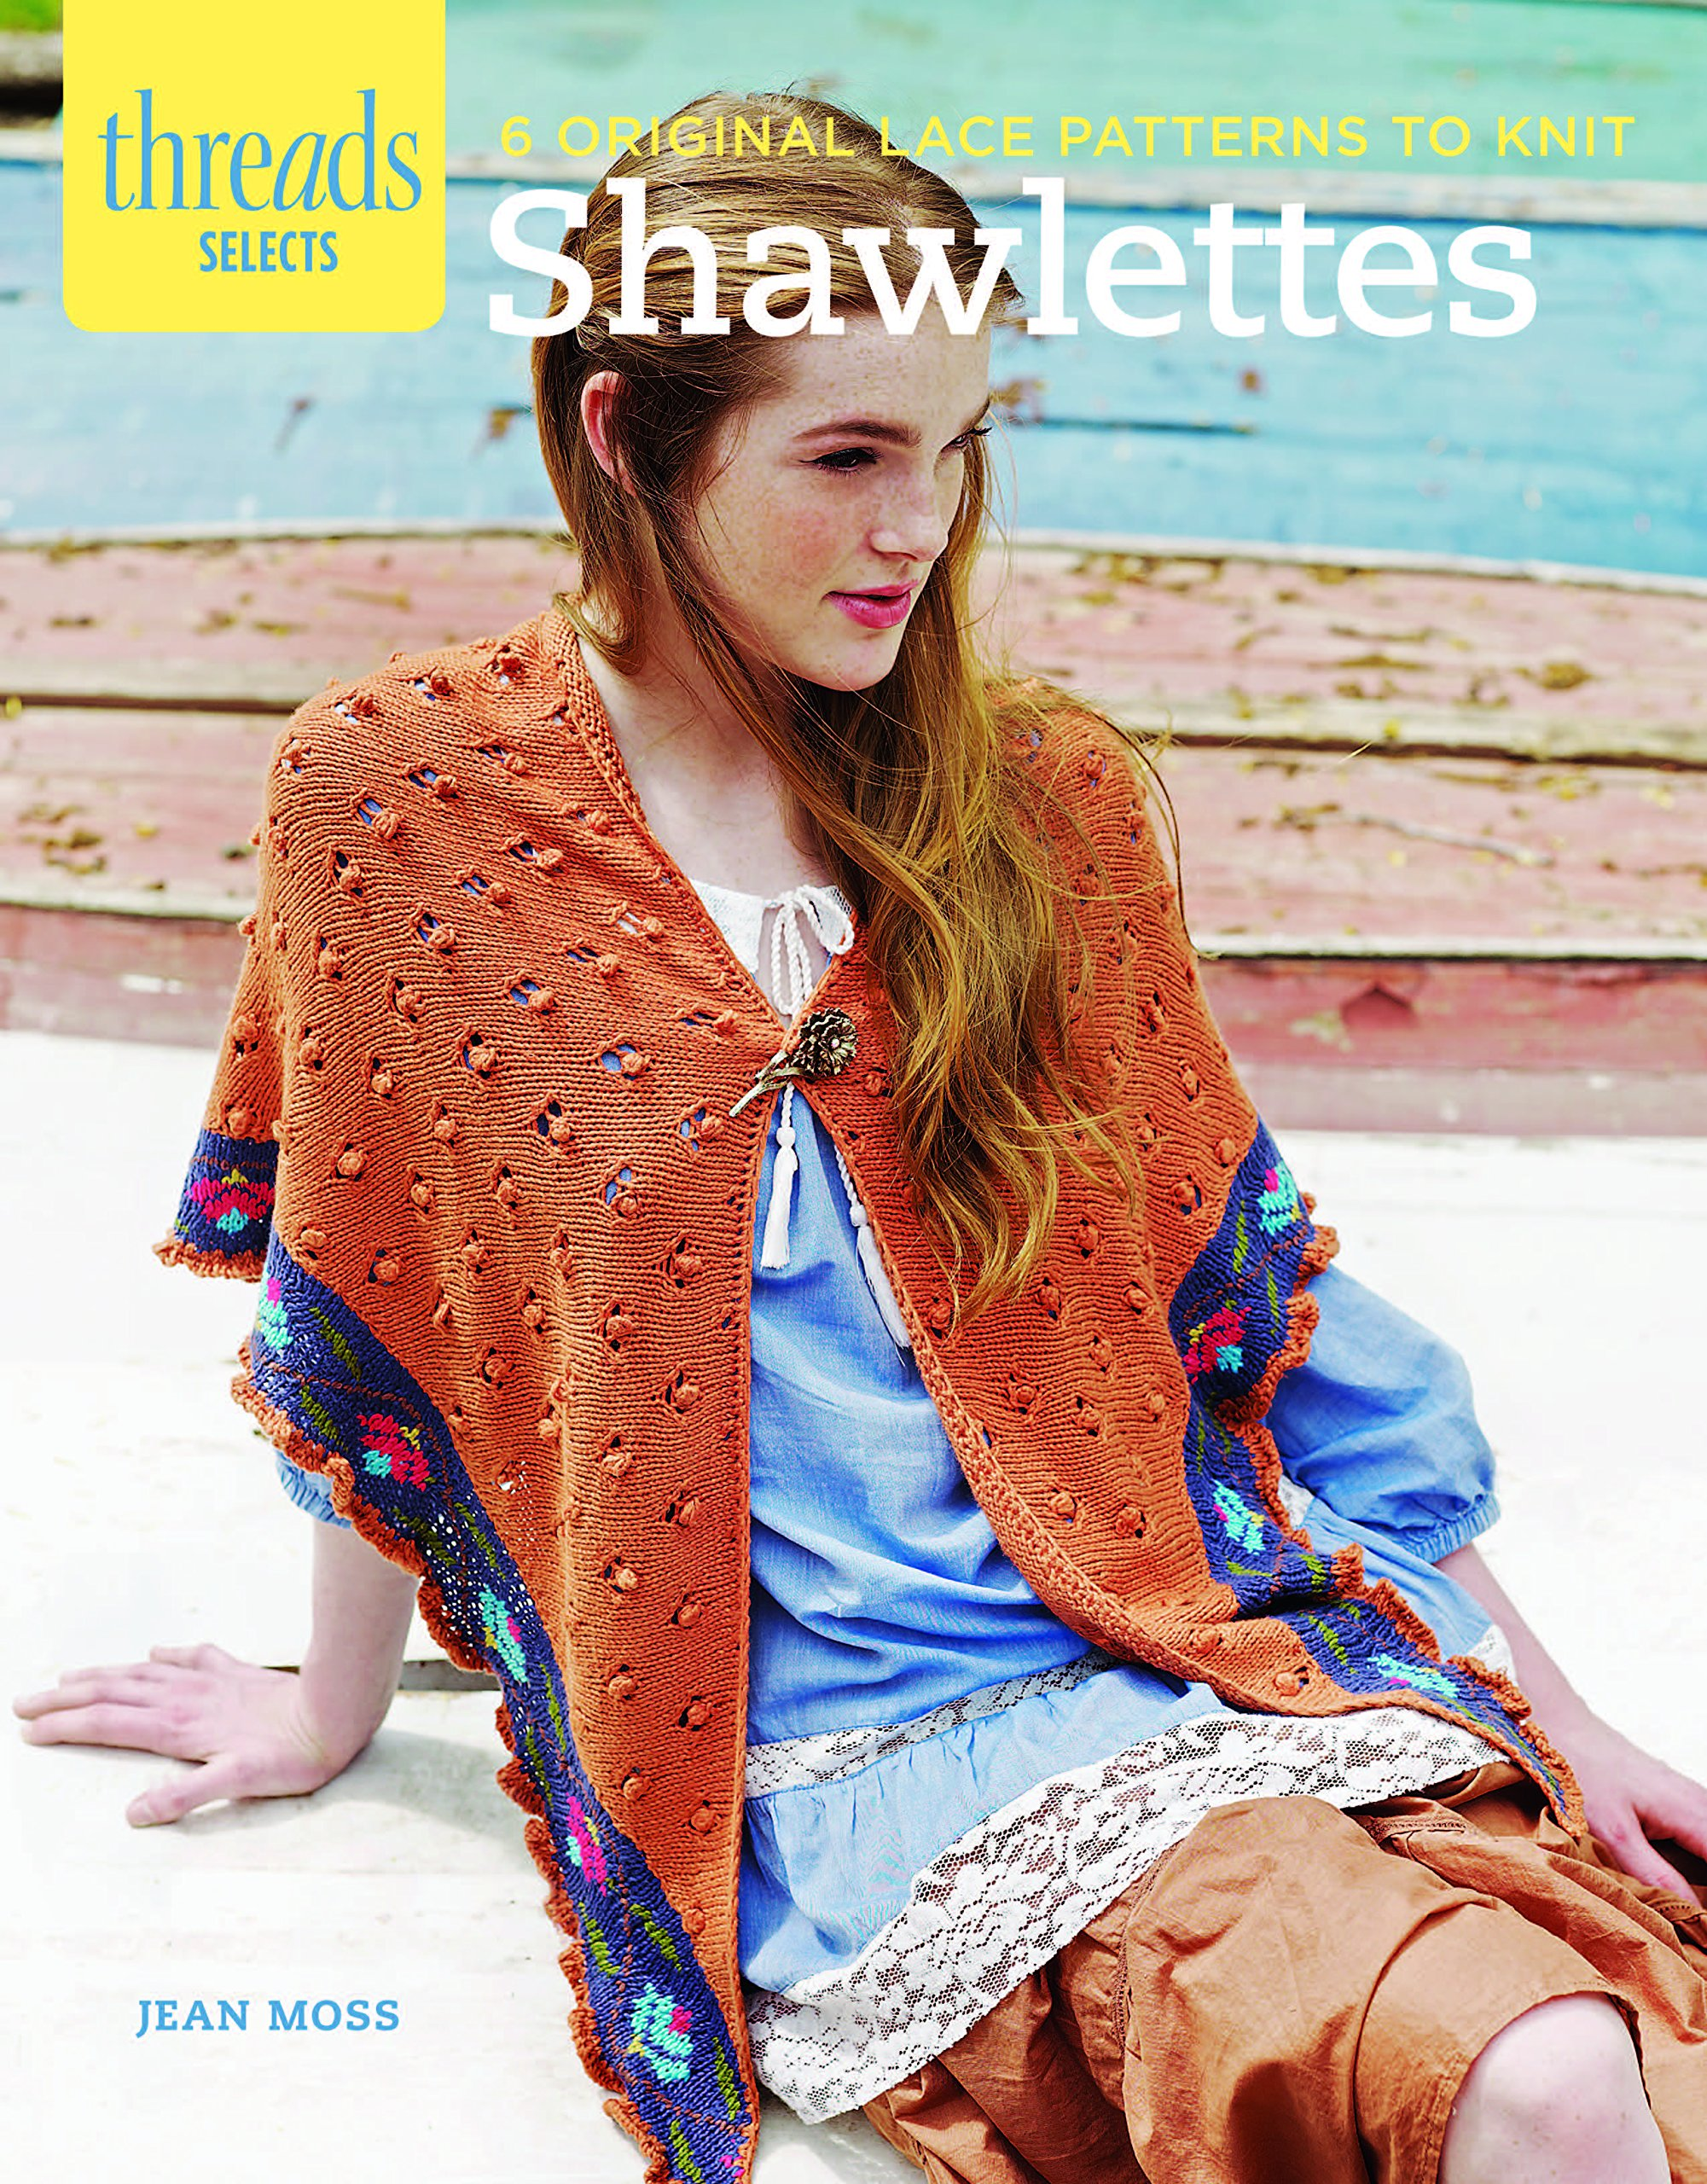 Download Shawlettes: 6 original lace patterns to knit (Threads Selects) pdf epub